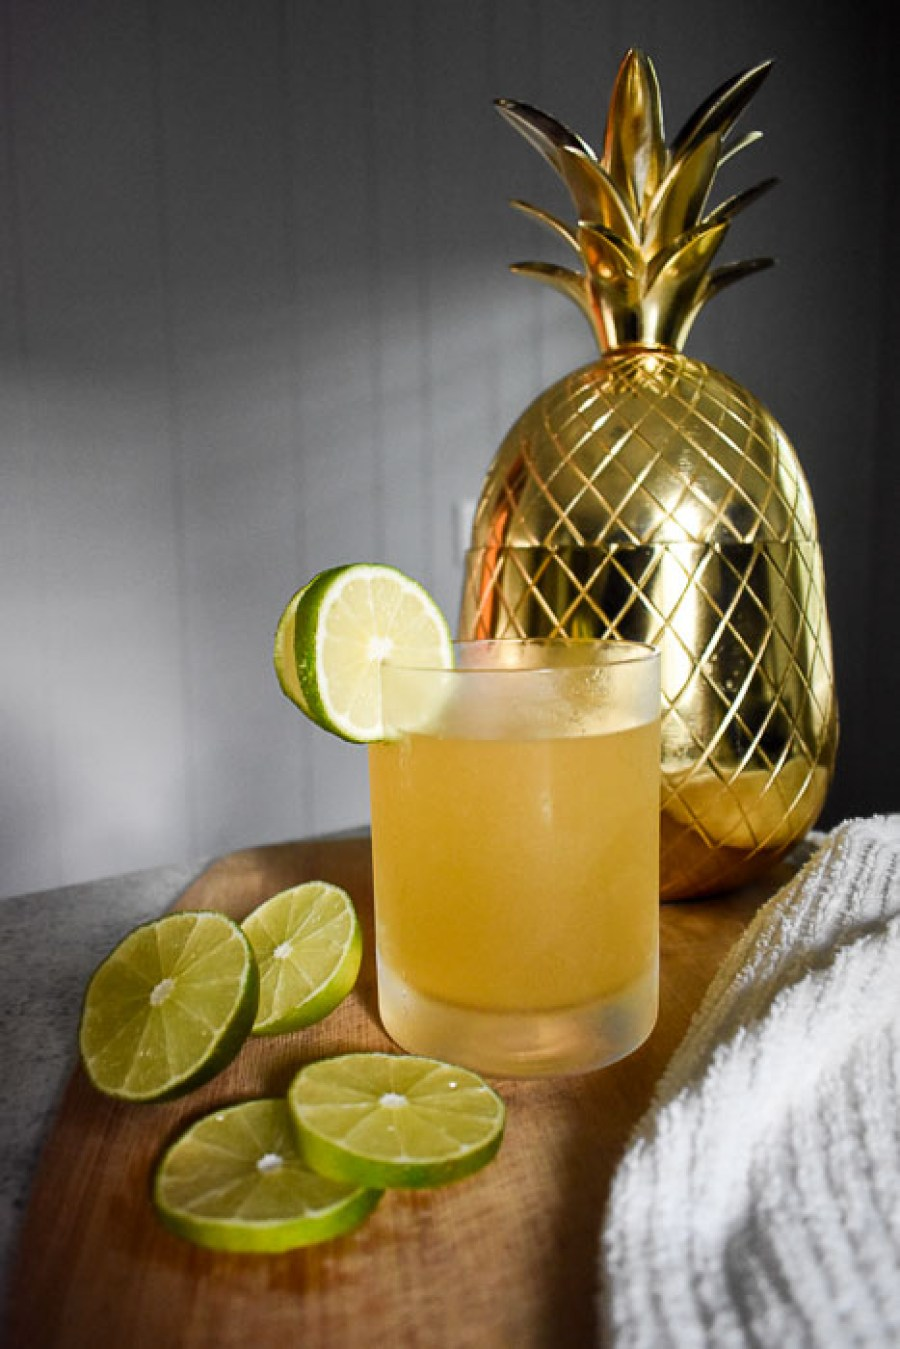 The kind-of dark and stormy is an easy twist on the classic Caribbean cocktail made with dark rum, ginger beer, and key lime and pineapple juices. Recipe by Dash of Jazz